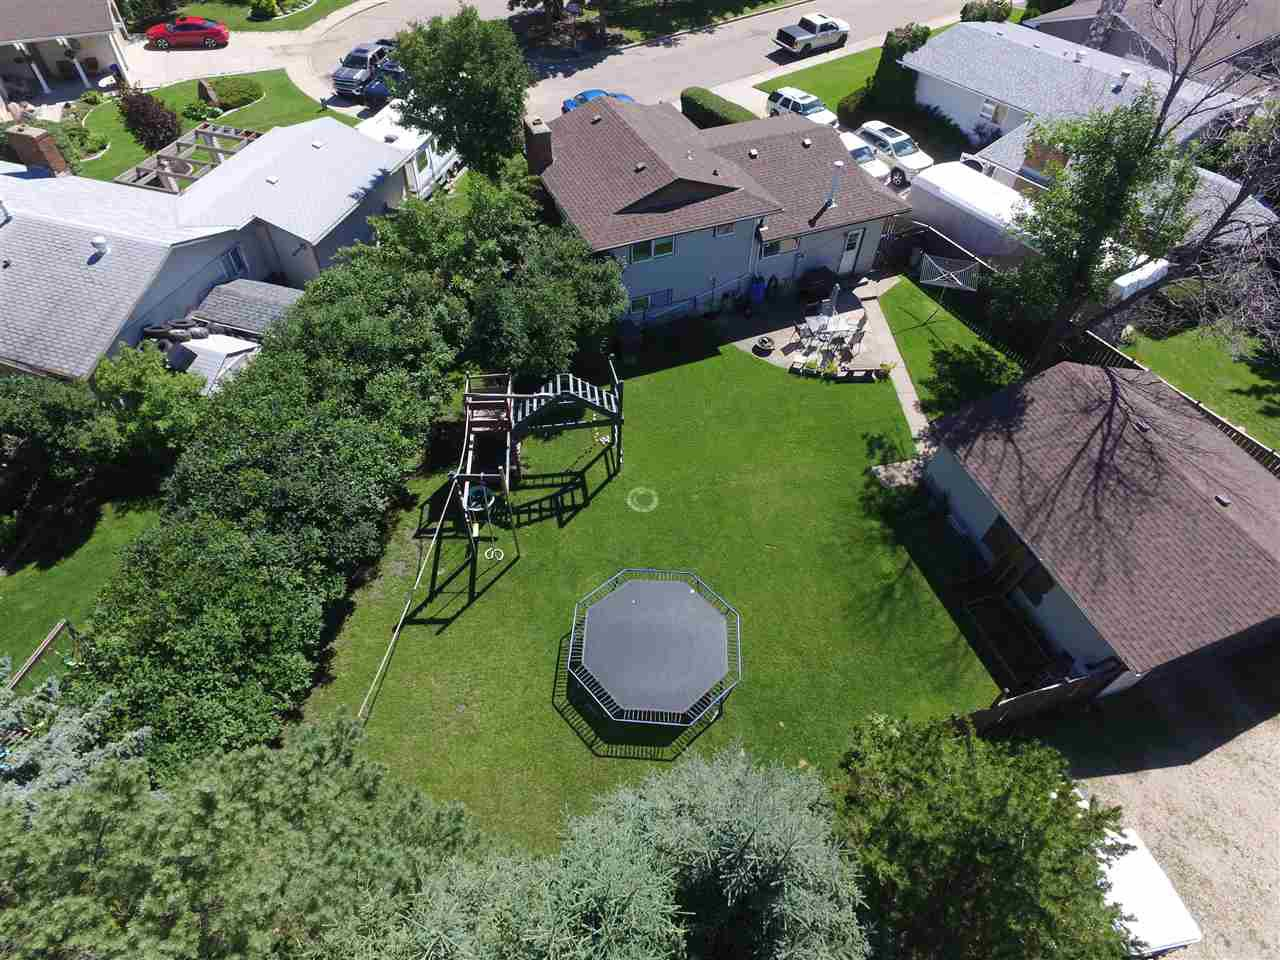 Main Photo: 125 Spruce Crescent: Wetaskiwin House for sale : MLS®# E4219948